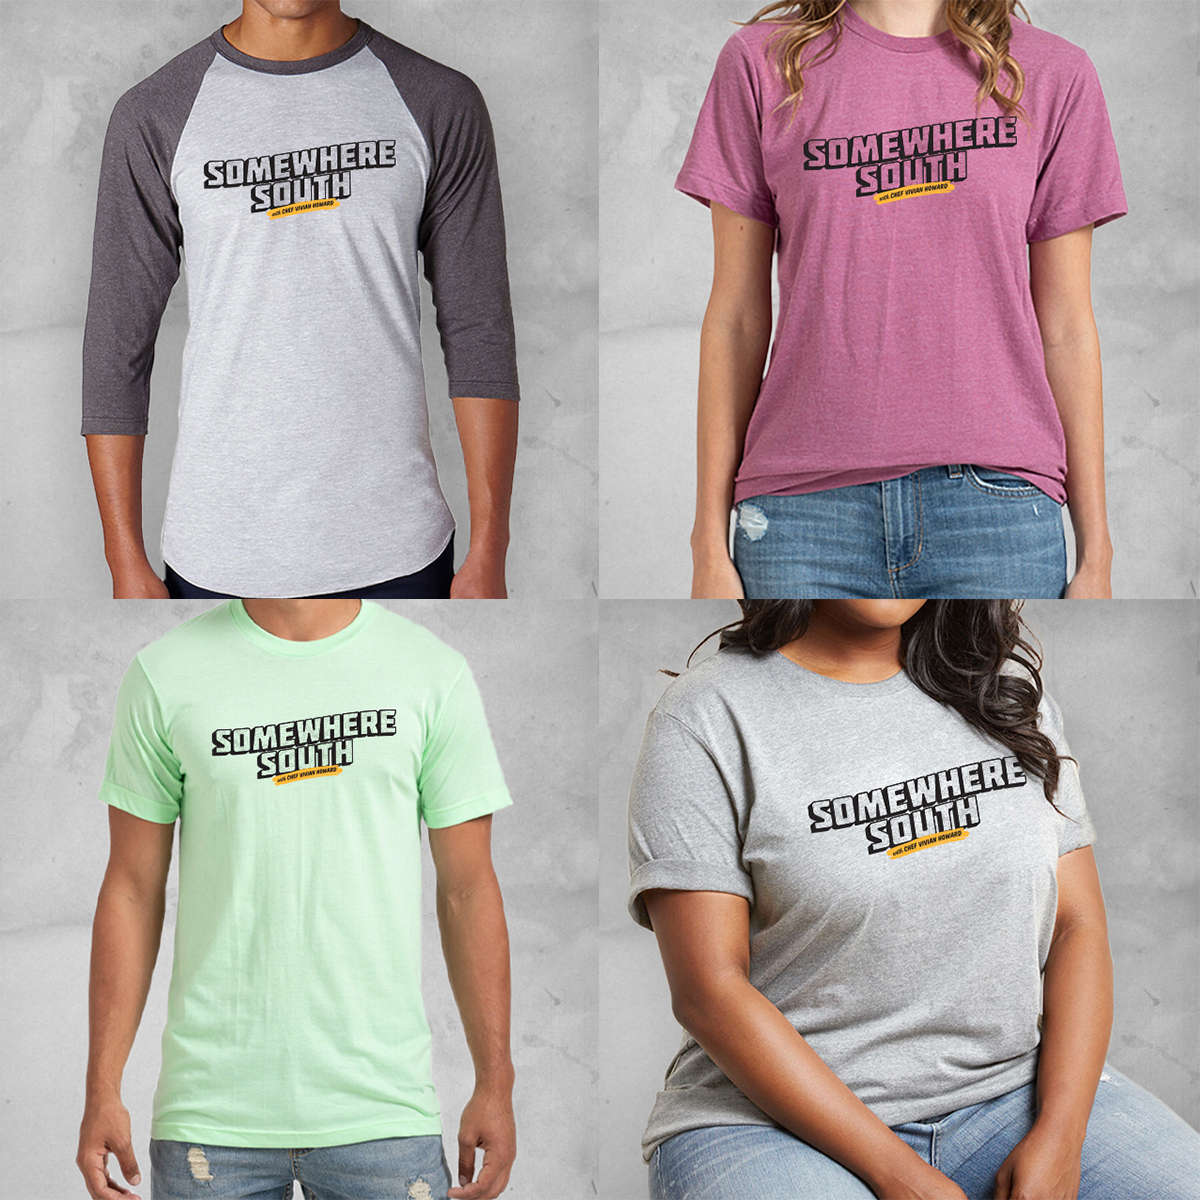 Brighten someone's day (or your own😬🛍) with a new Somewhere South shirt! Shop here: https://t.co/4LVjlB5ipZ #SomewhereSouthPBS   #wearitwednesday #shop #merch #tv #shirt #tvshow #tshirts #clothing #tees #apparel #swagg #show #tshirtoftheday https://t.co/uH1Z66zXF0